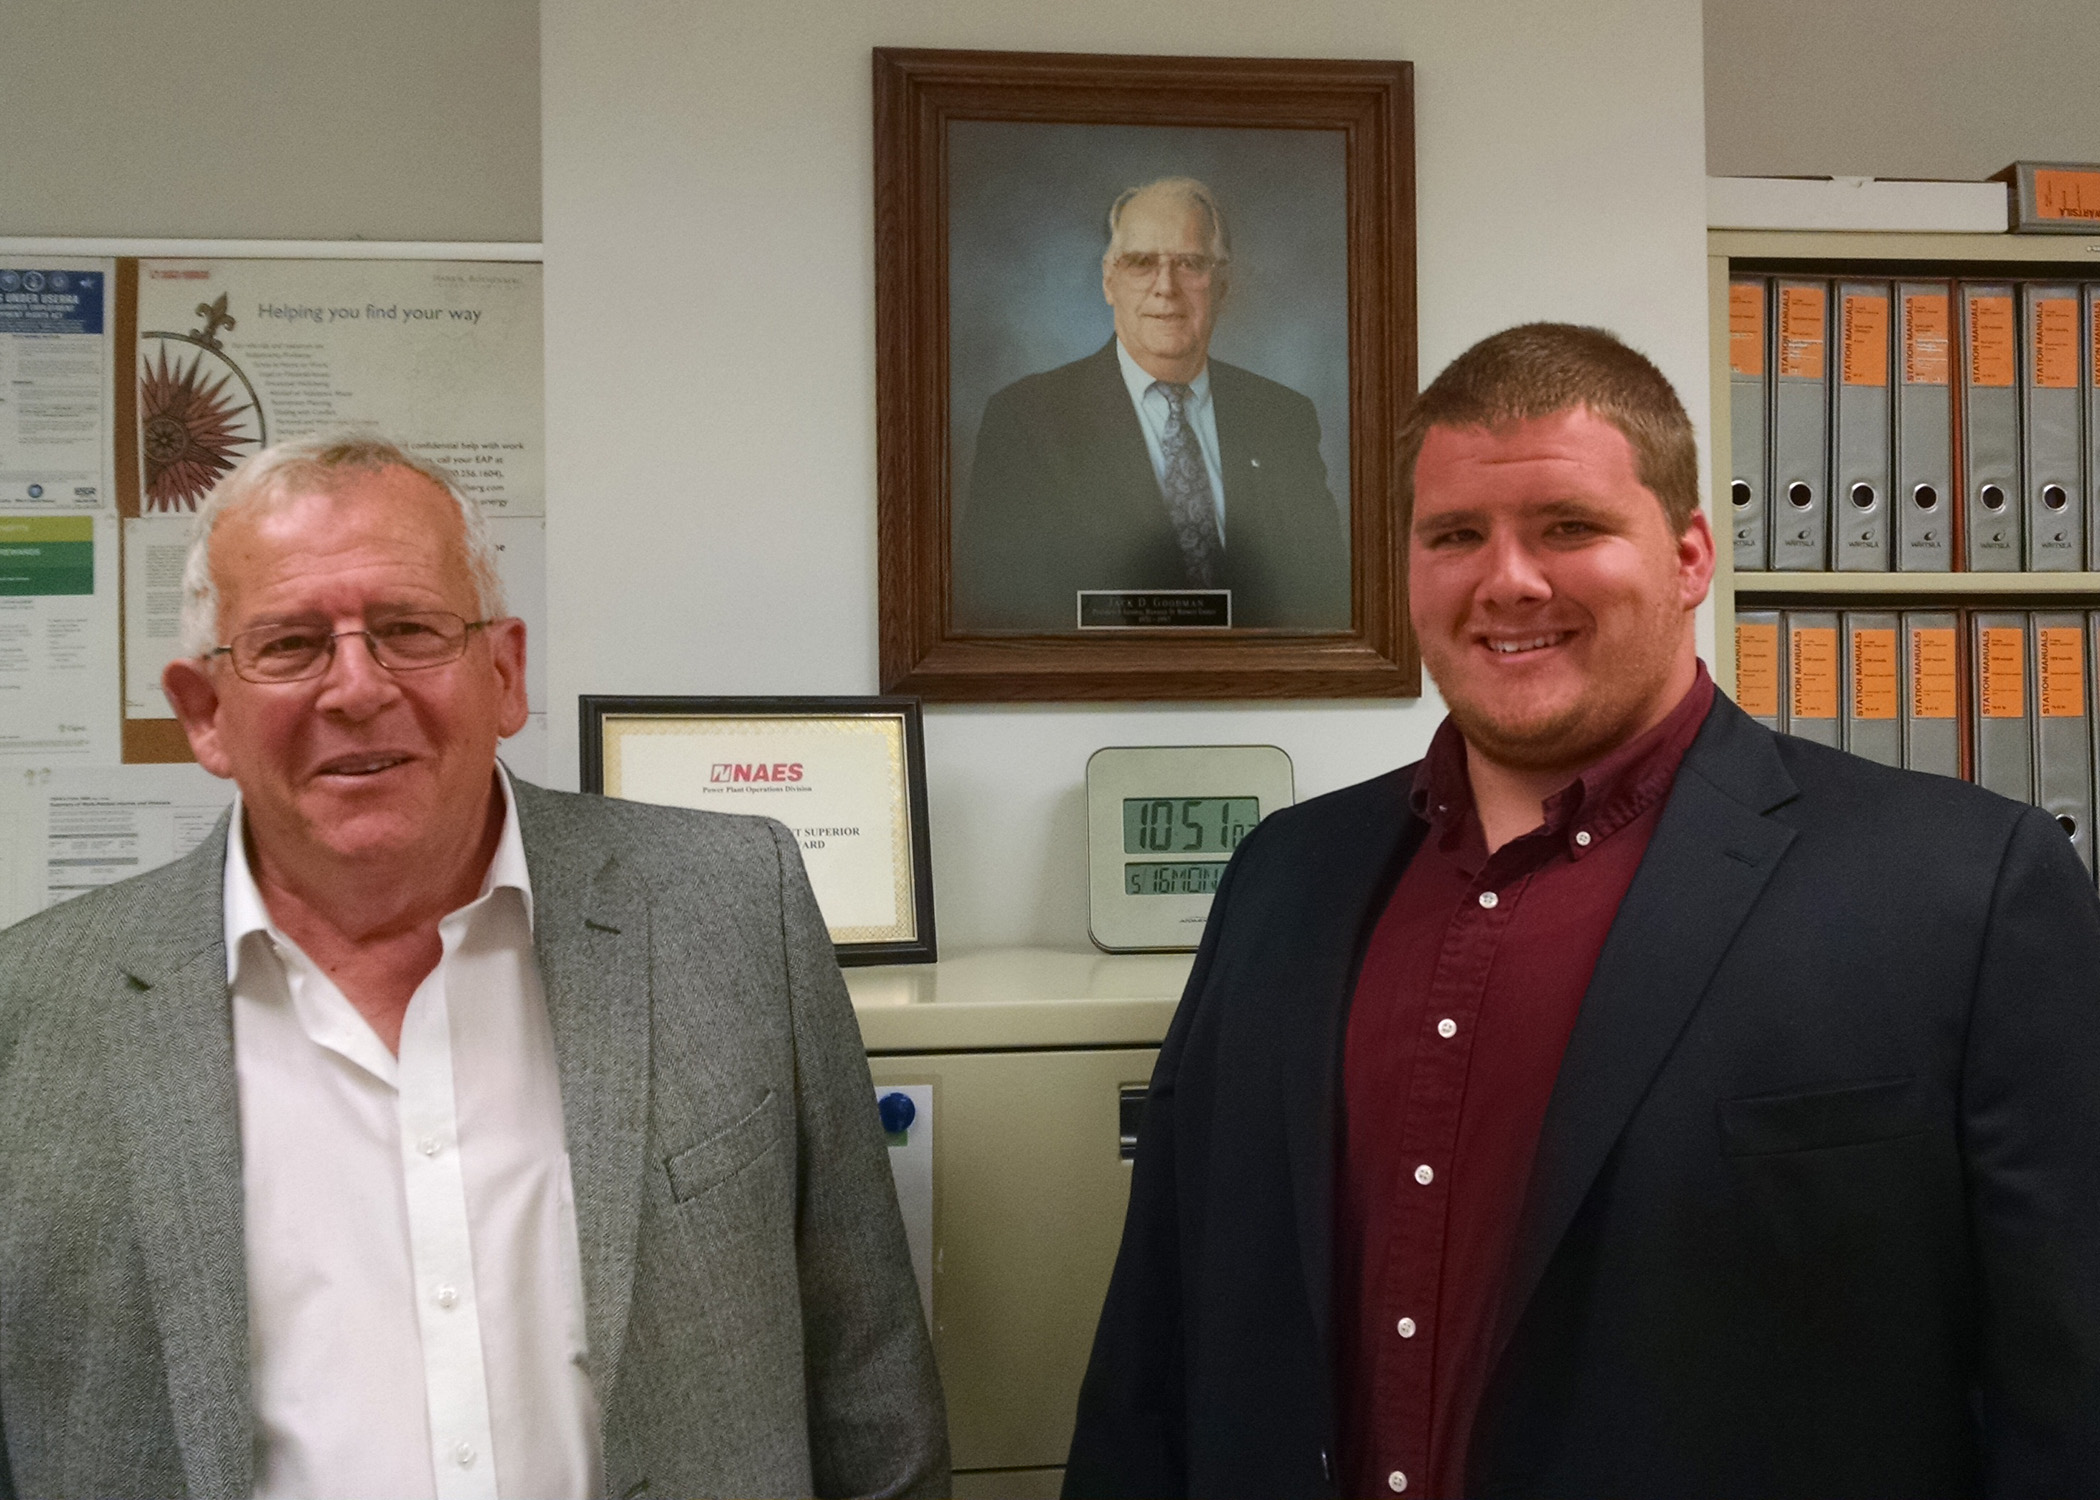 Marc Goodman and his son, Daniel Goodman, stand in front of a portrait of Jack Goodman, former president and general manager at Midwest Energy and for whom the Goodman Energy Center is named.  Jack Goodman is Marc's father and Daniel's grandfather.